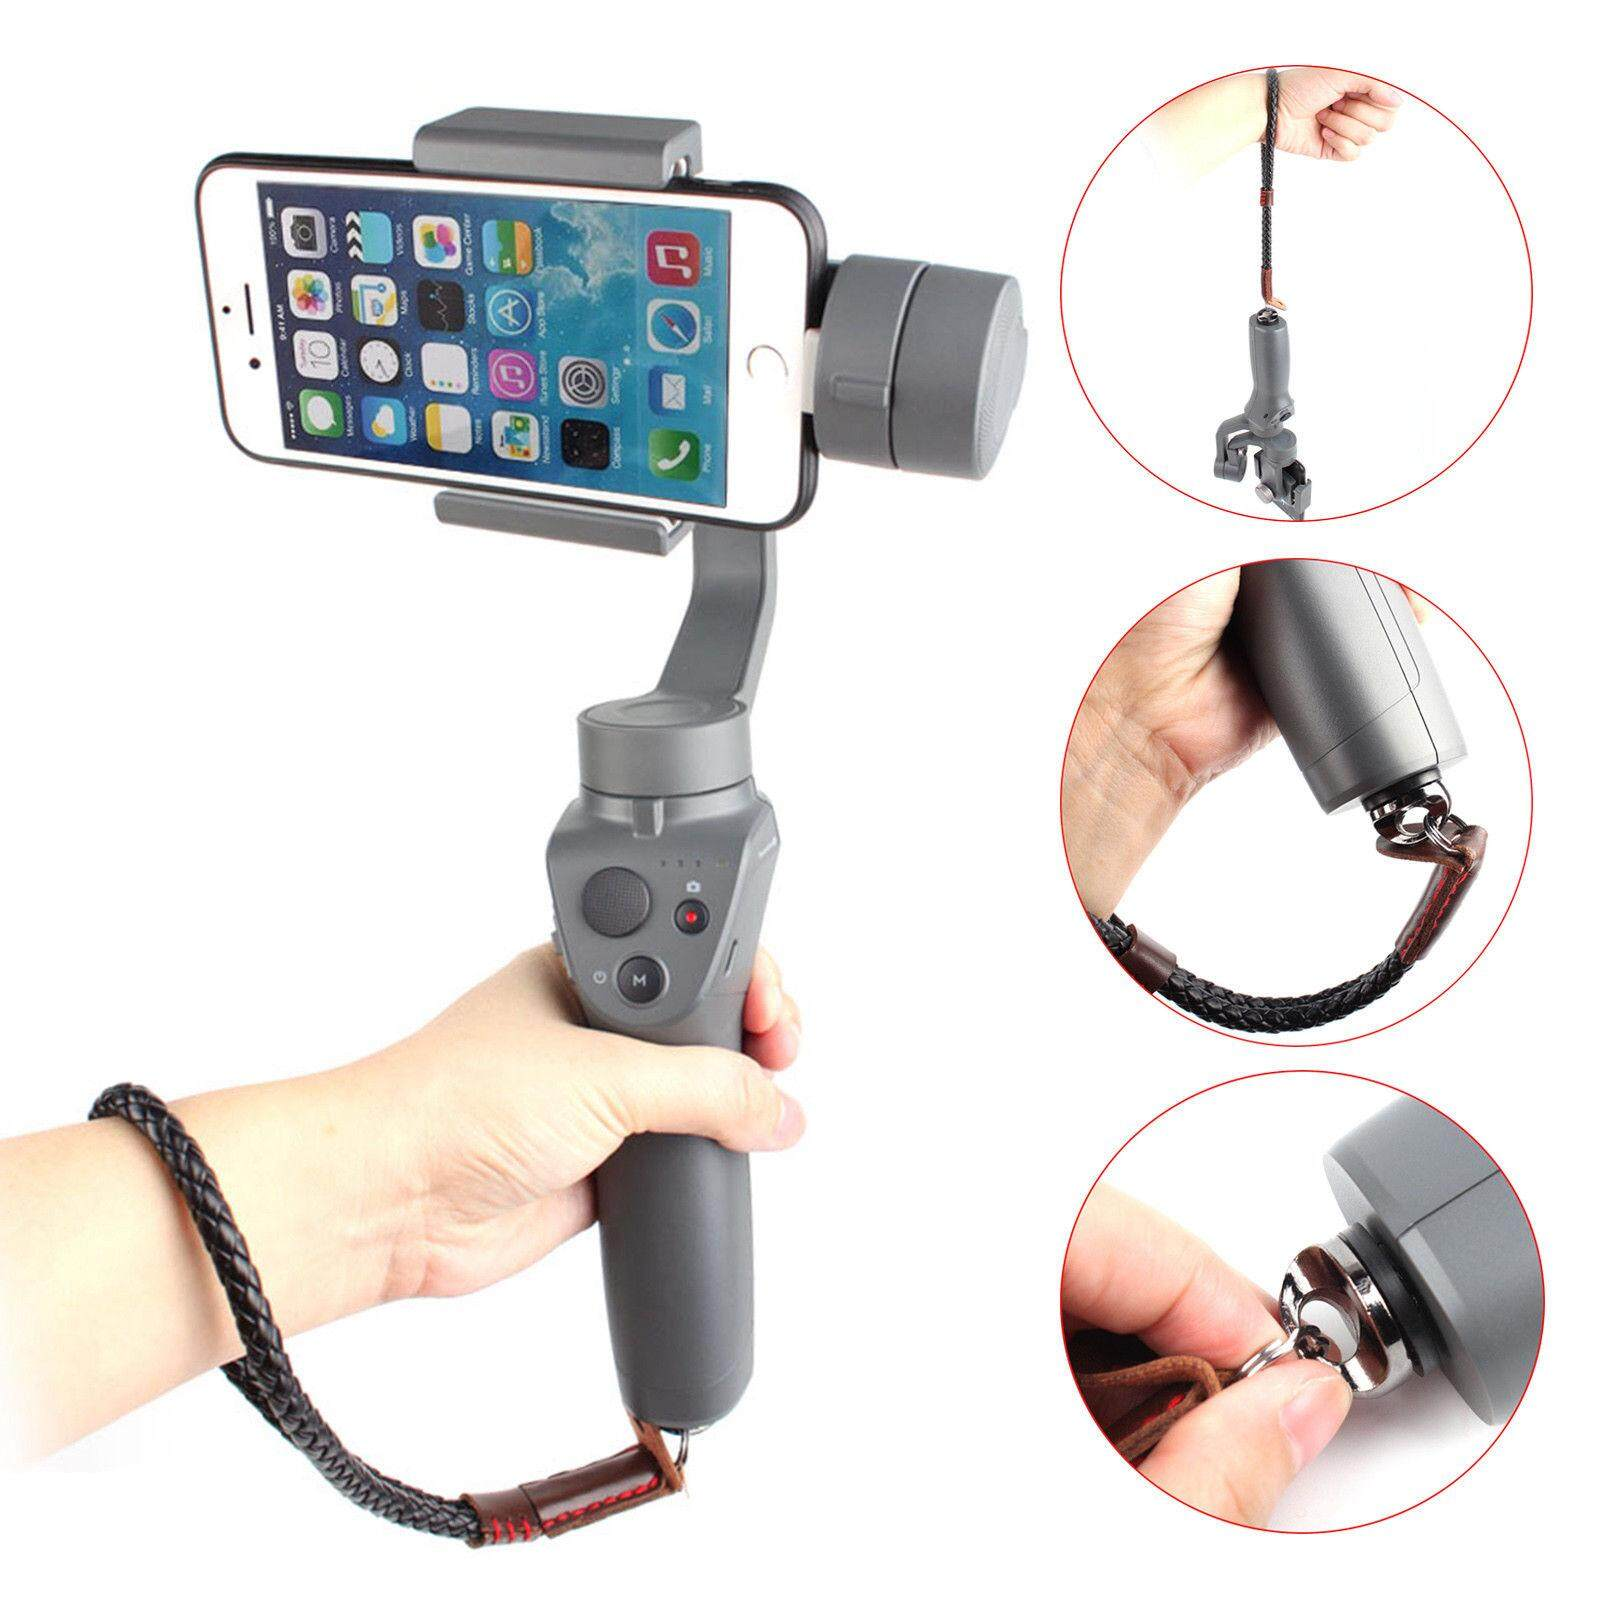 Ryt Grip Handheld Stand Wrist Hand Strap For Osmo Mobile 2 Handheld Gimbal Camera By Ryder Yi Trading.